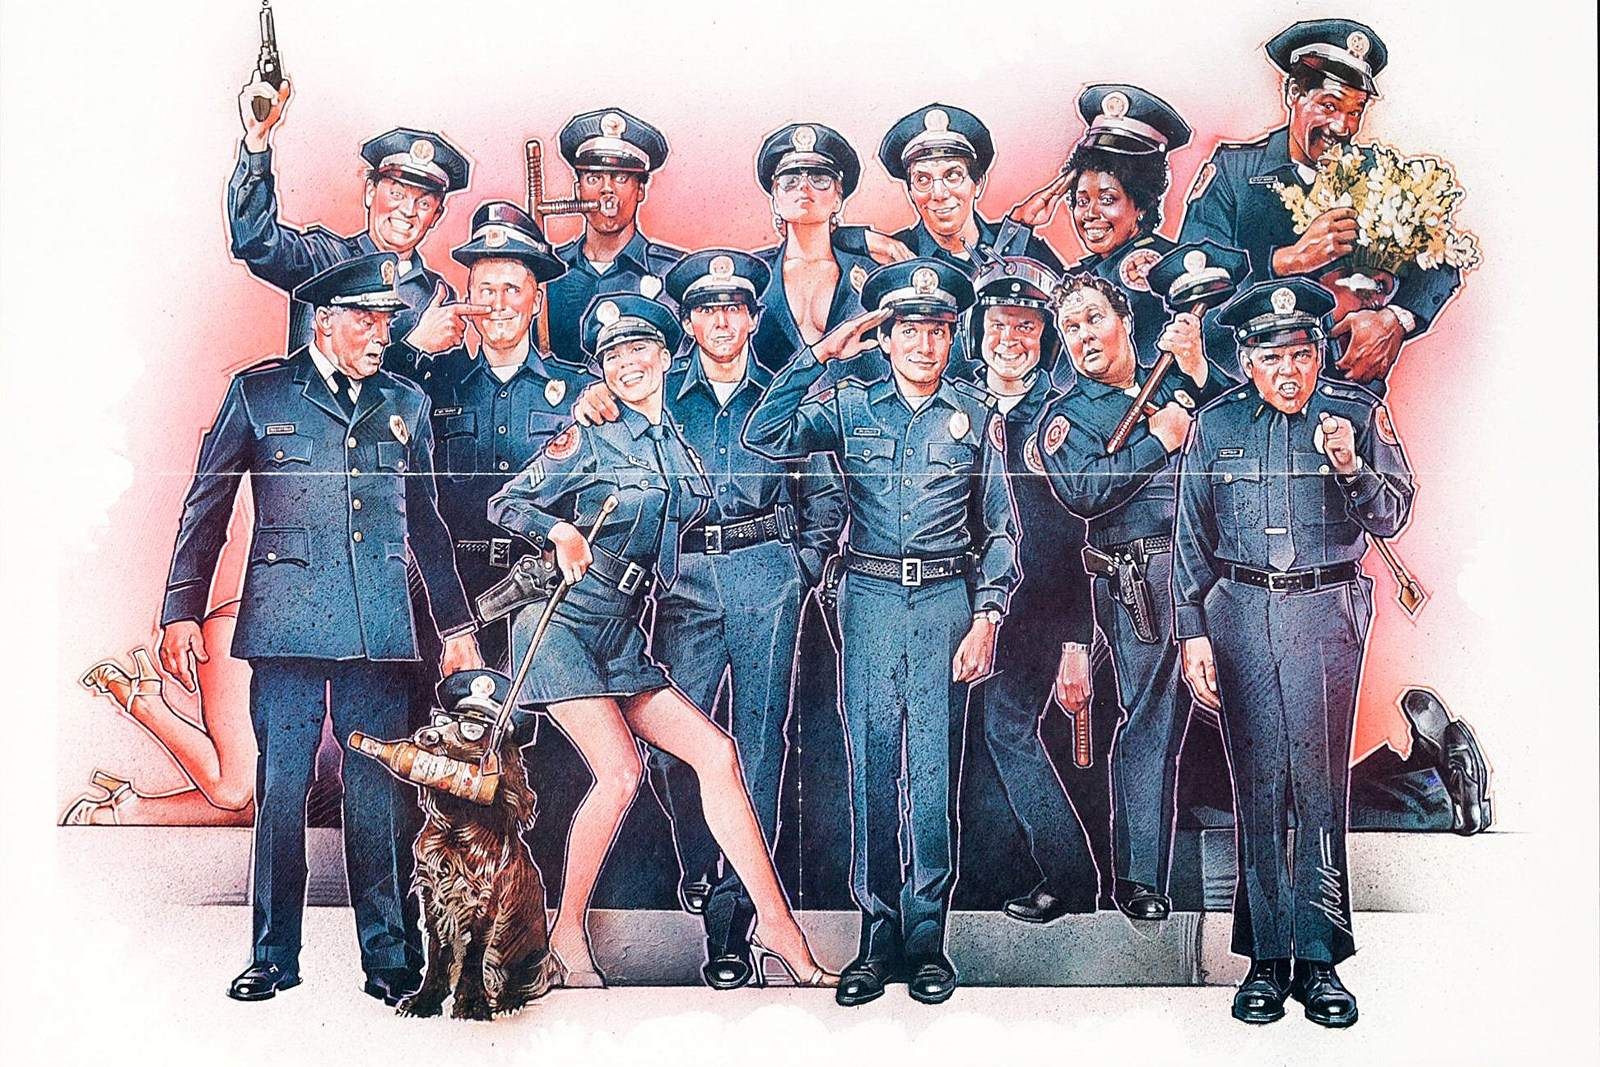 'More Flatulence, More Slobbishness, More T&A': The Birth of 'Police Academy'